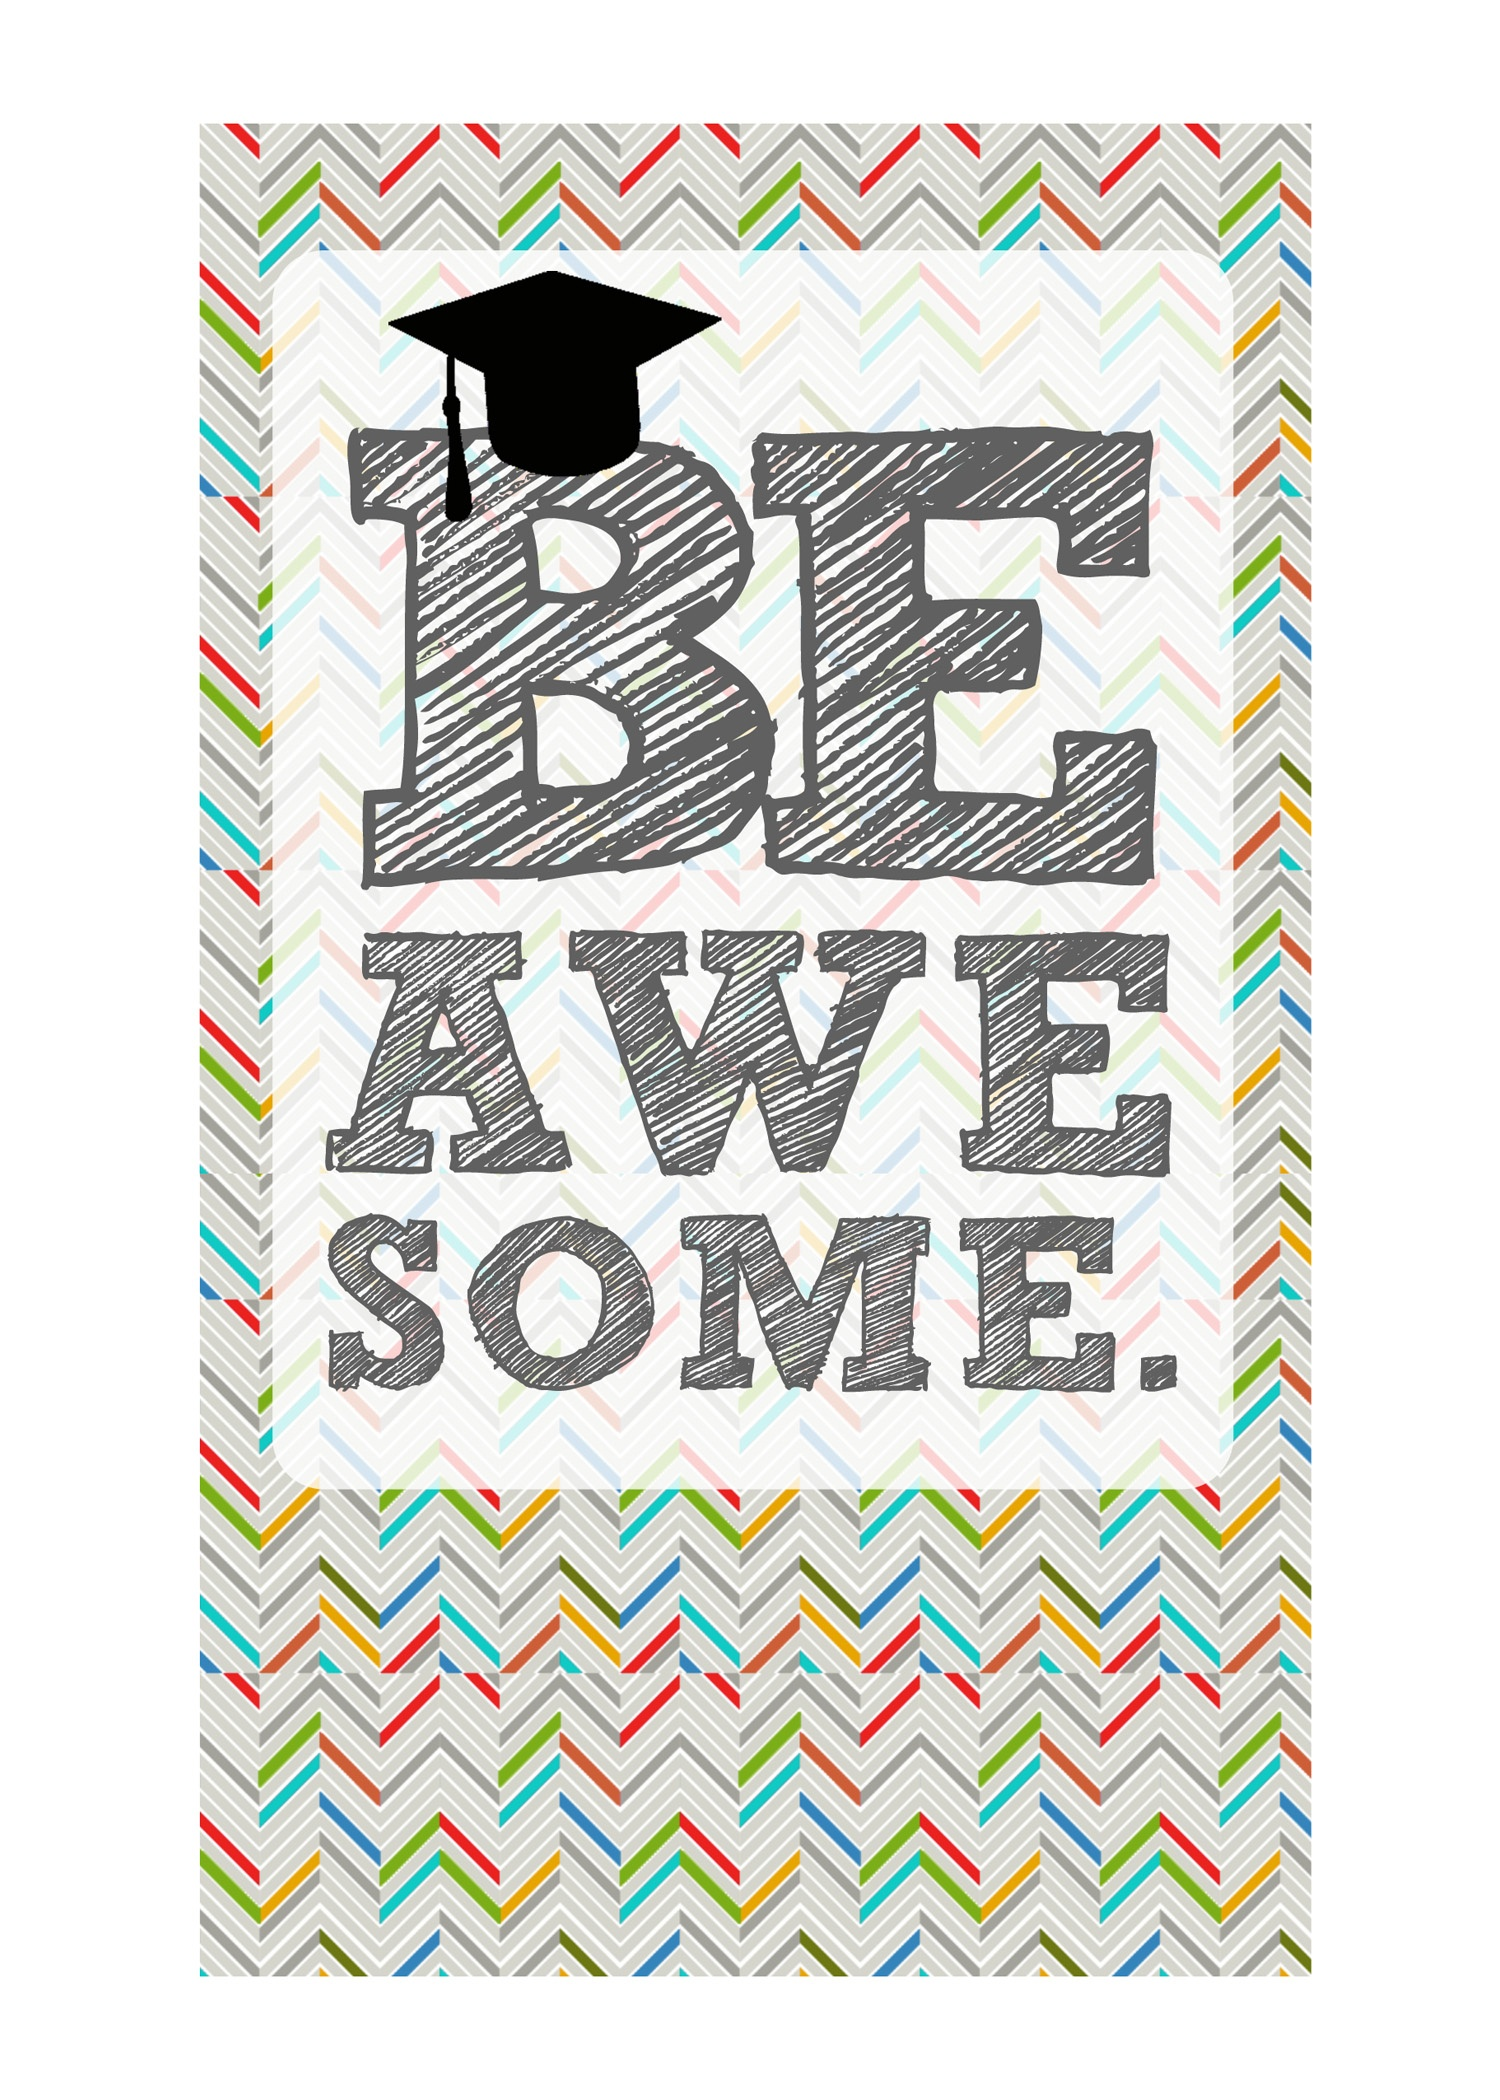 Diy Printable Graduation Cards–'omg' & 'be Awesome' - Free Printable Graduation Cards